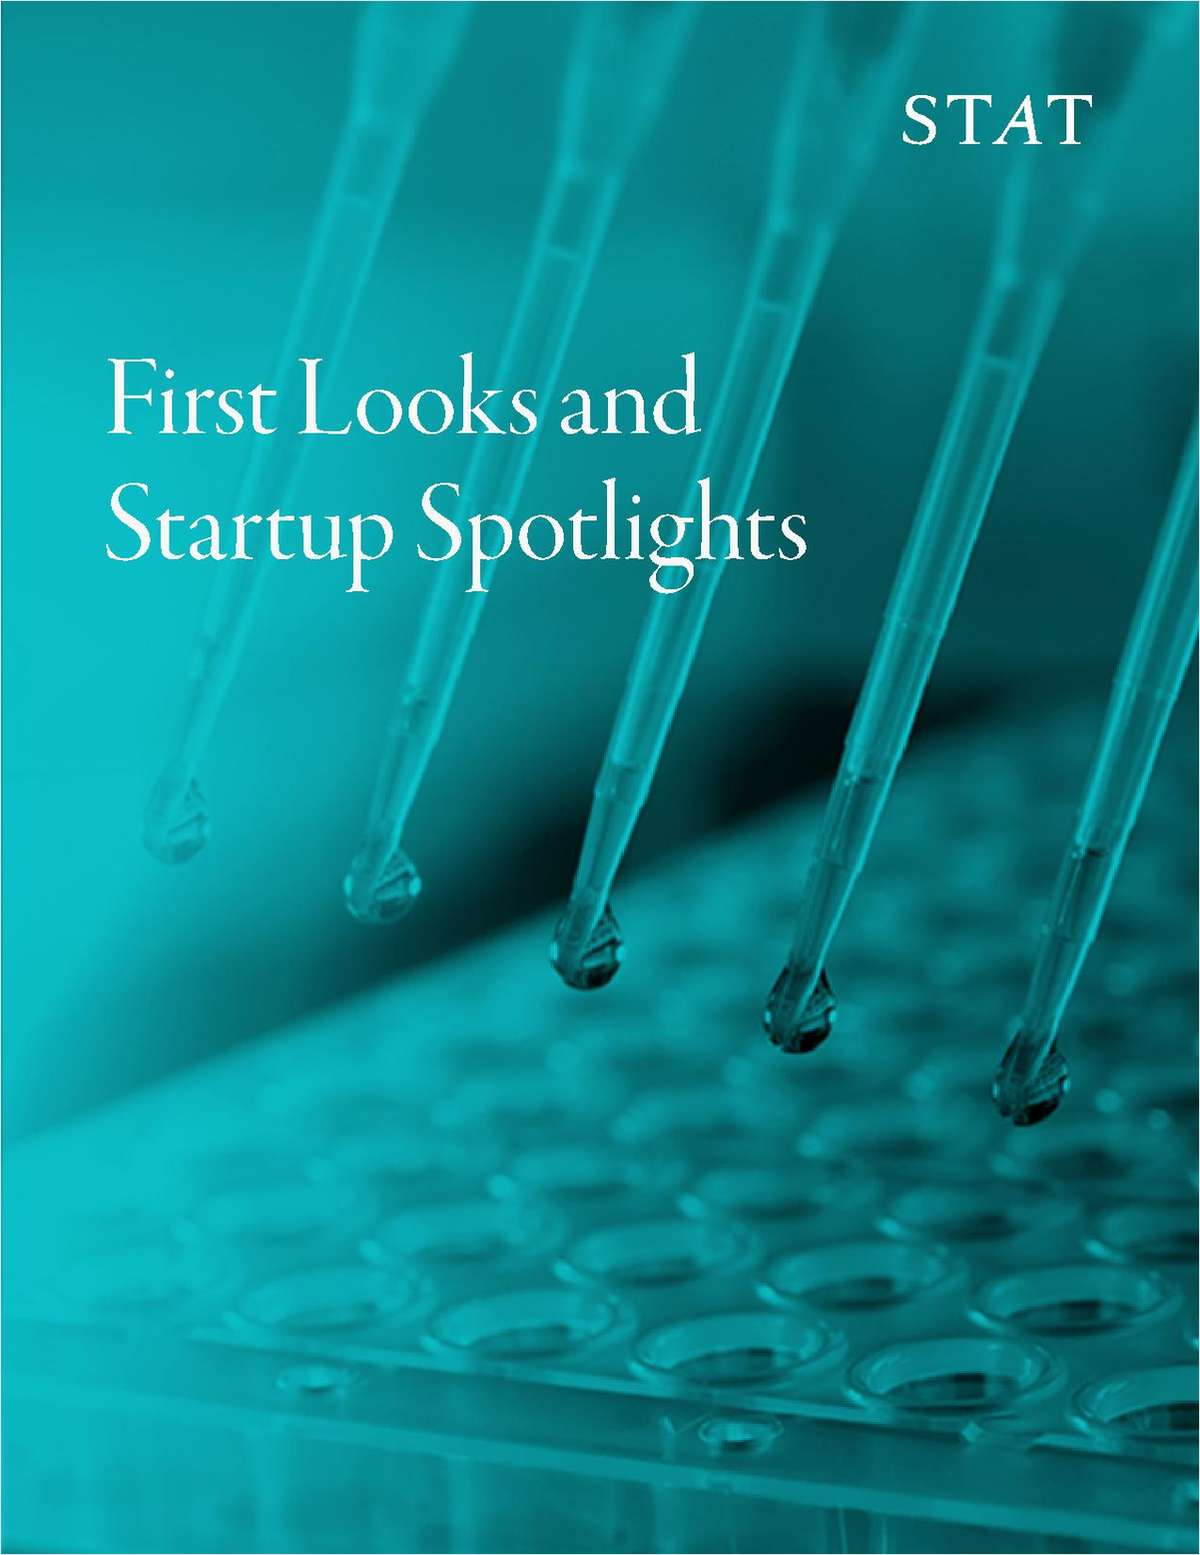 First Looks and Startup Spotlights